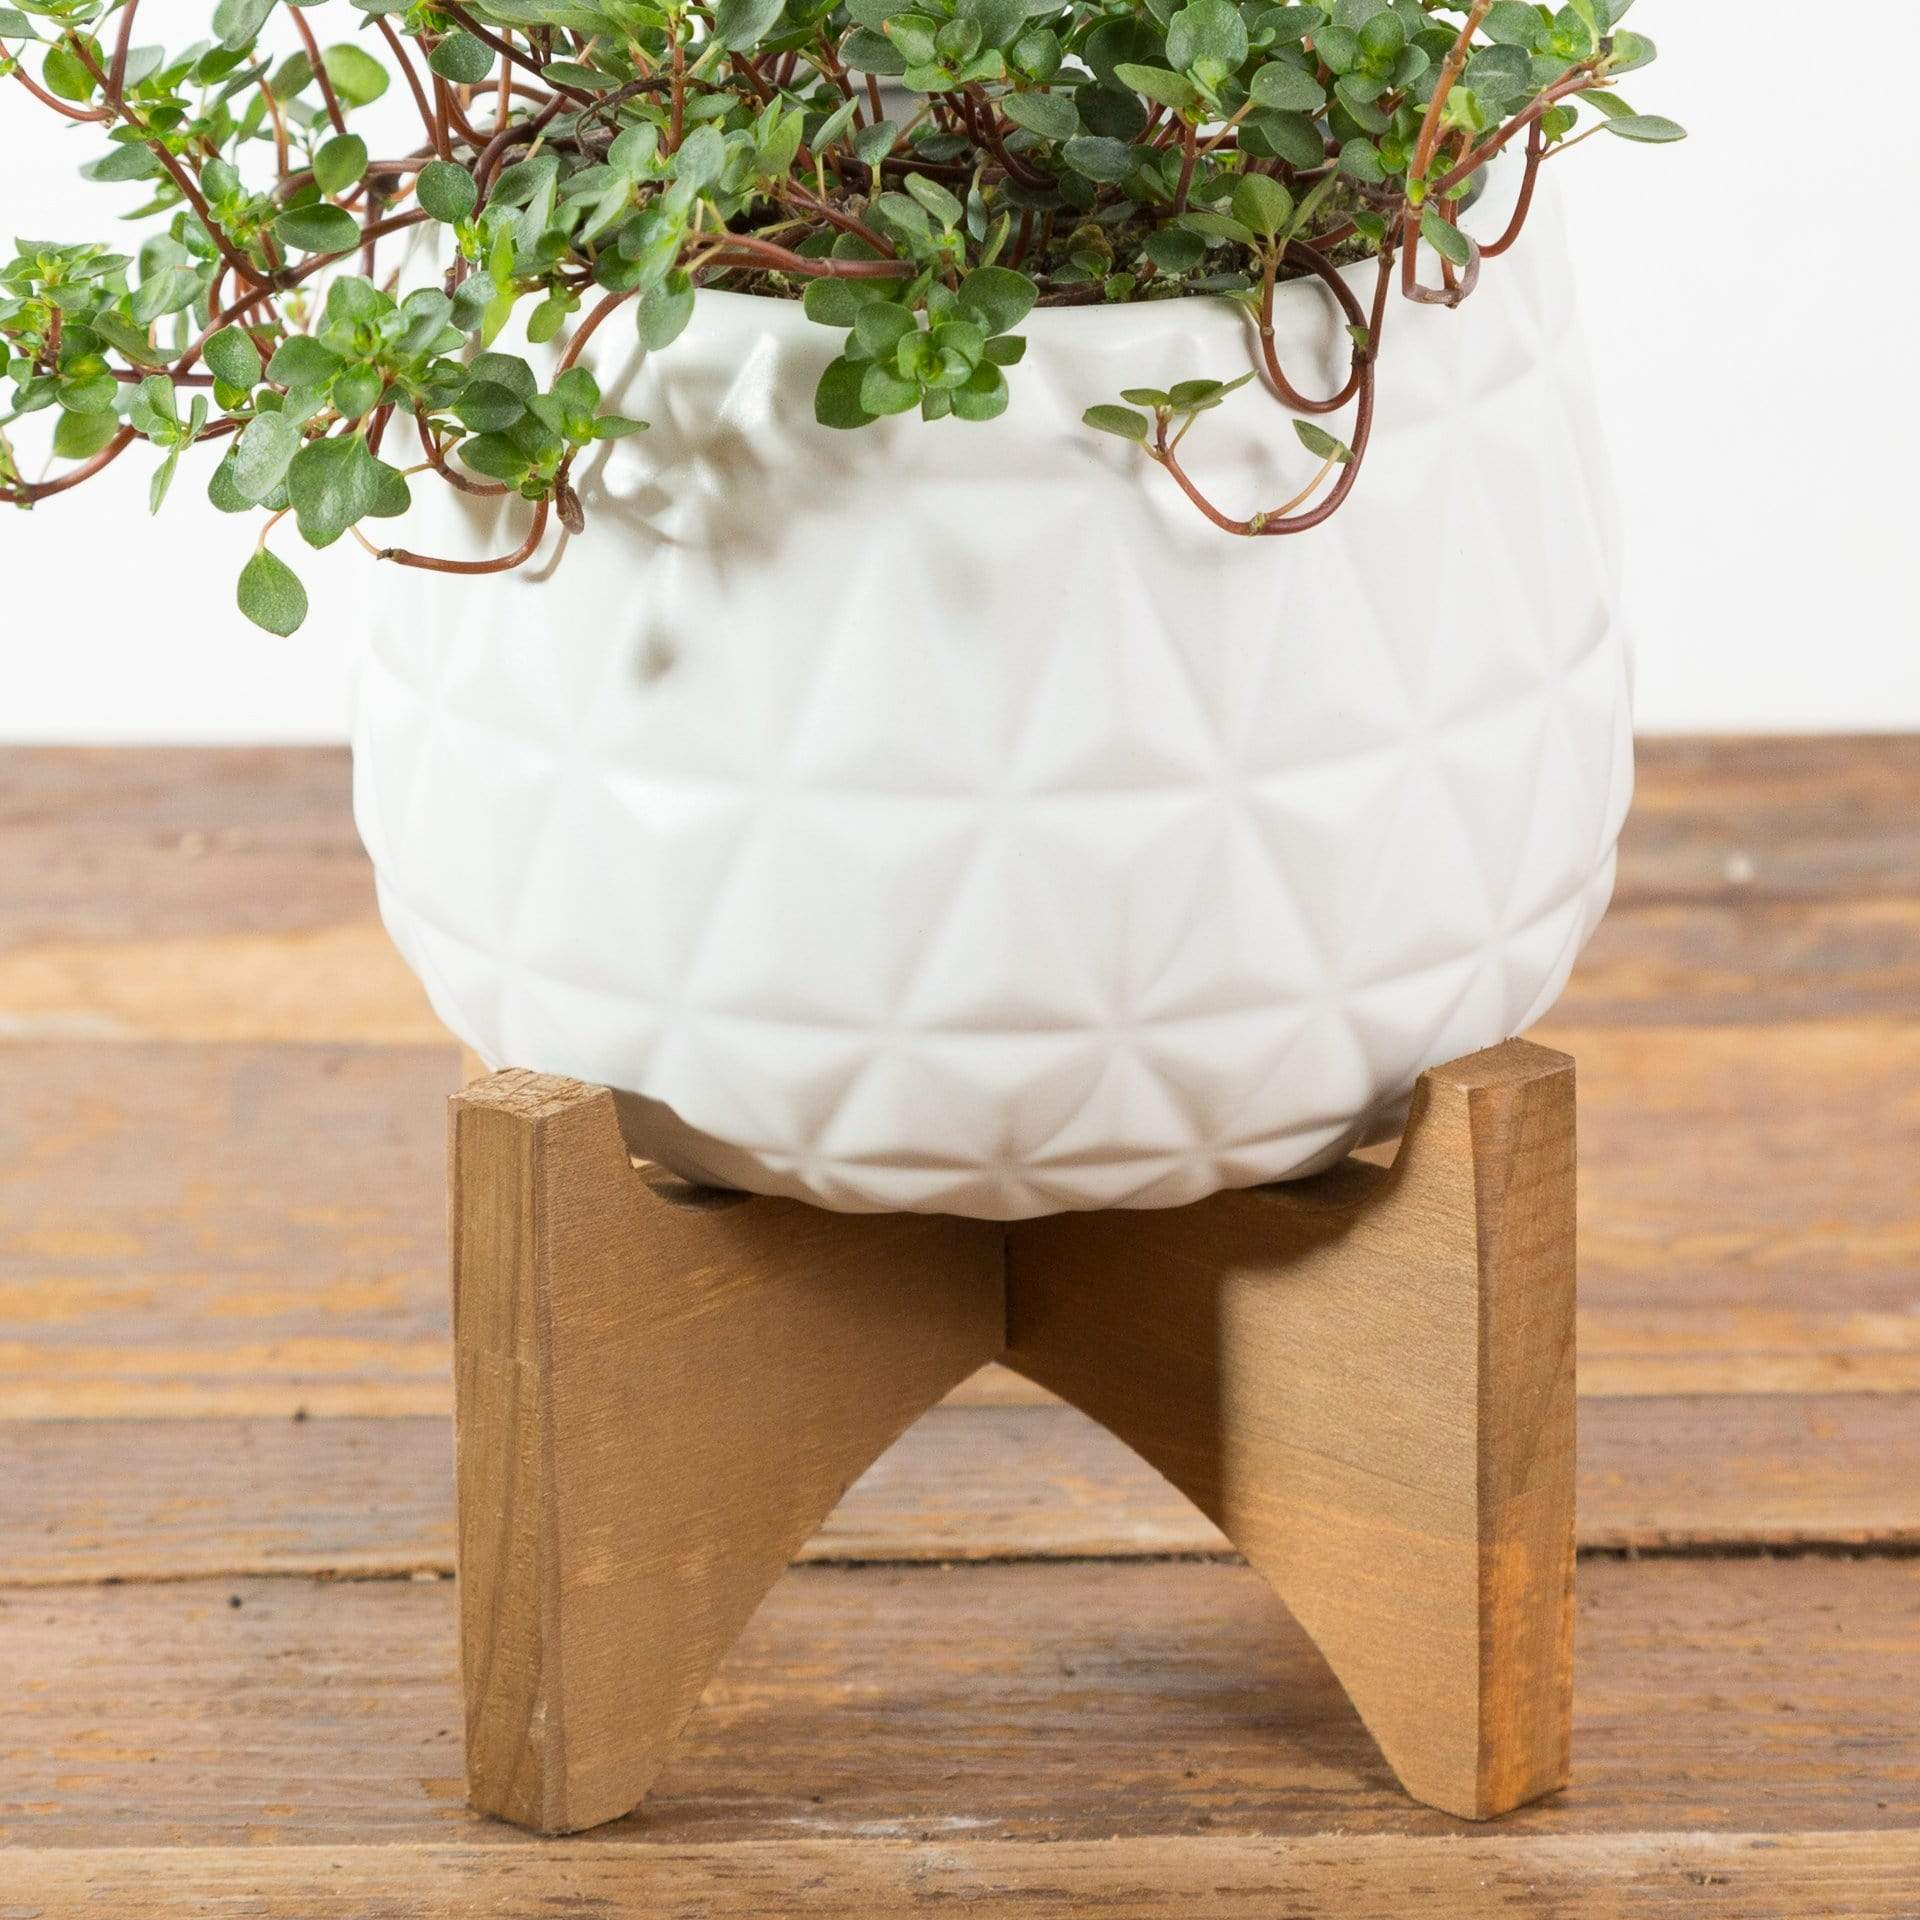 Kaleidoscope Planter - Urban Sprouts